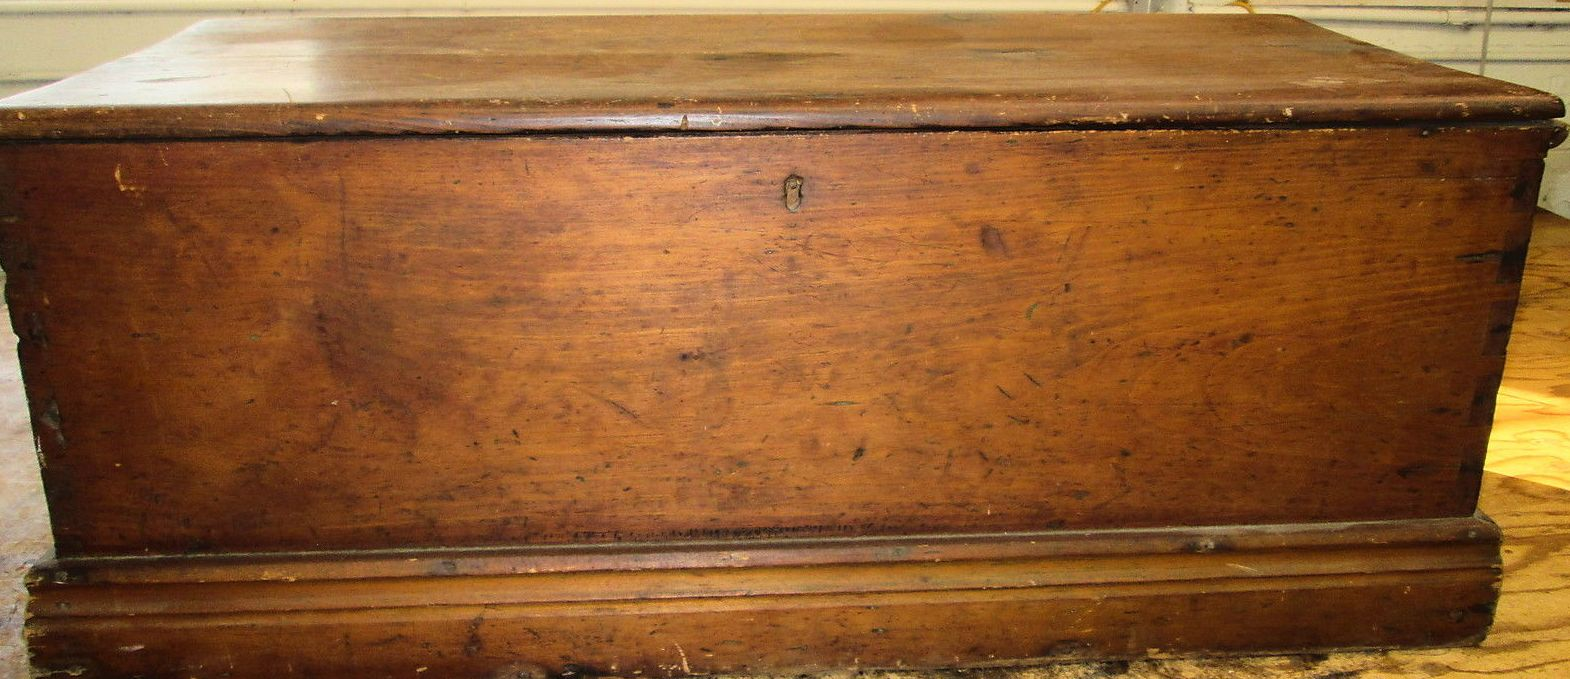 nautical early 19th century sailors sea chest used aboard American Whalers out of Massachusetts